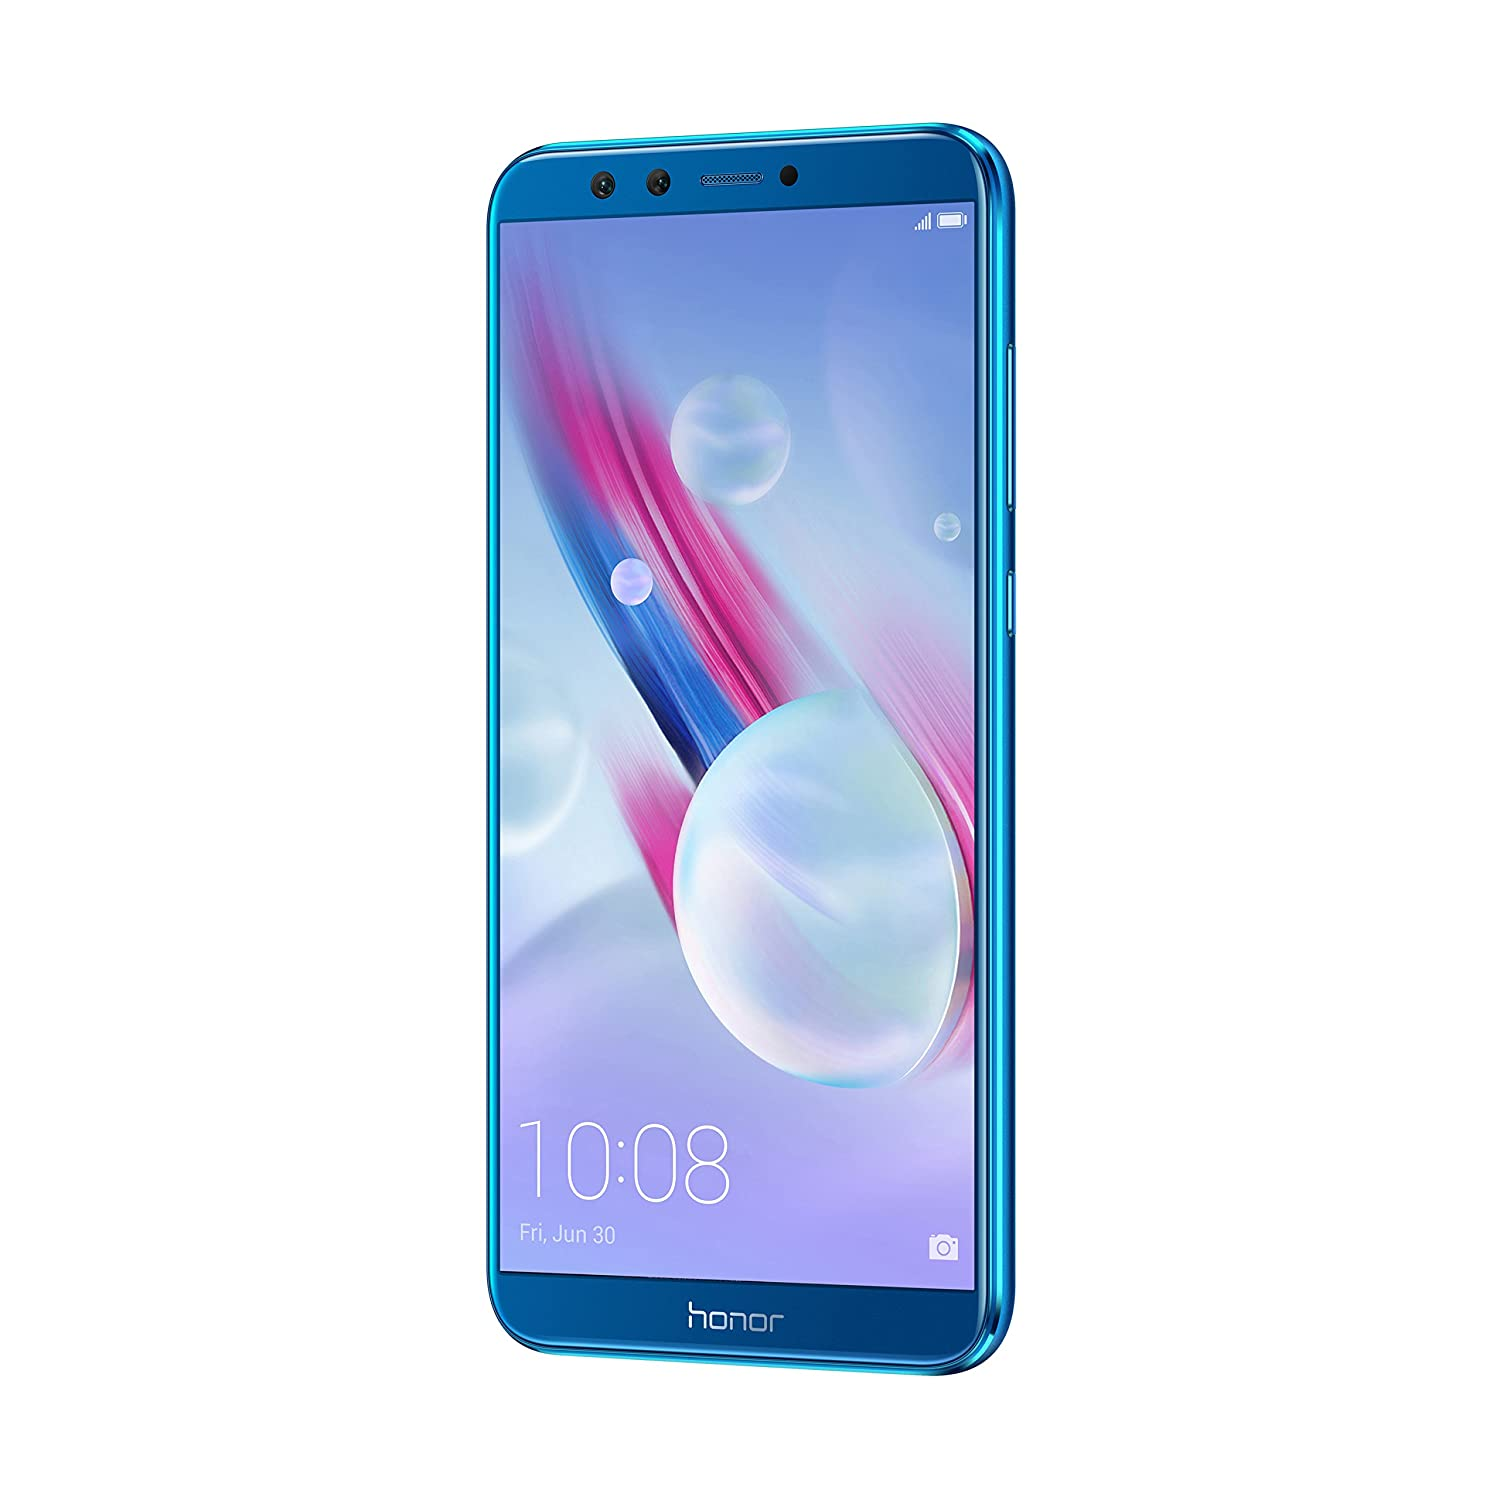 size 40 c6dbe 60f03 Honor 9 Lite Dual SIM, 32 GB storage, 13 MP Dual Camera and 5.65 Inch Full  View Display, UK Official Device - Blue